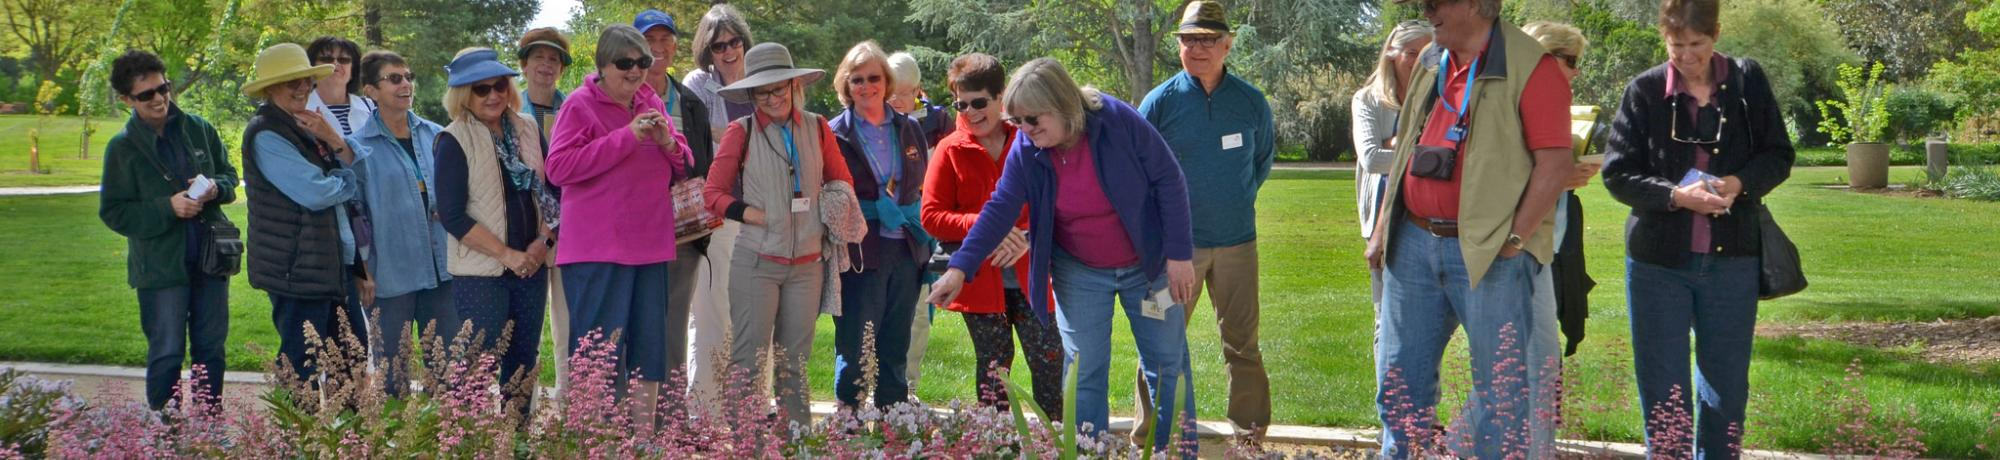 Image of Ellen Zagory leading a tour to a large group in a scenic location of the Arboretum.